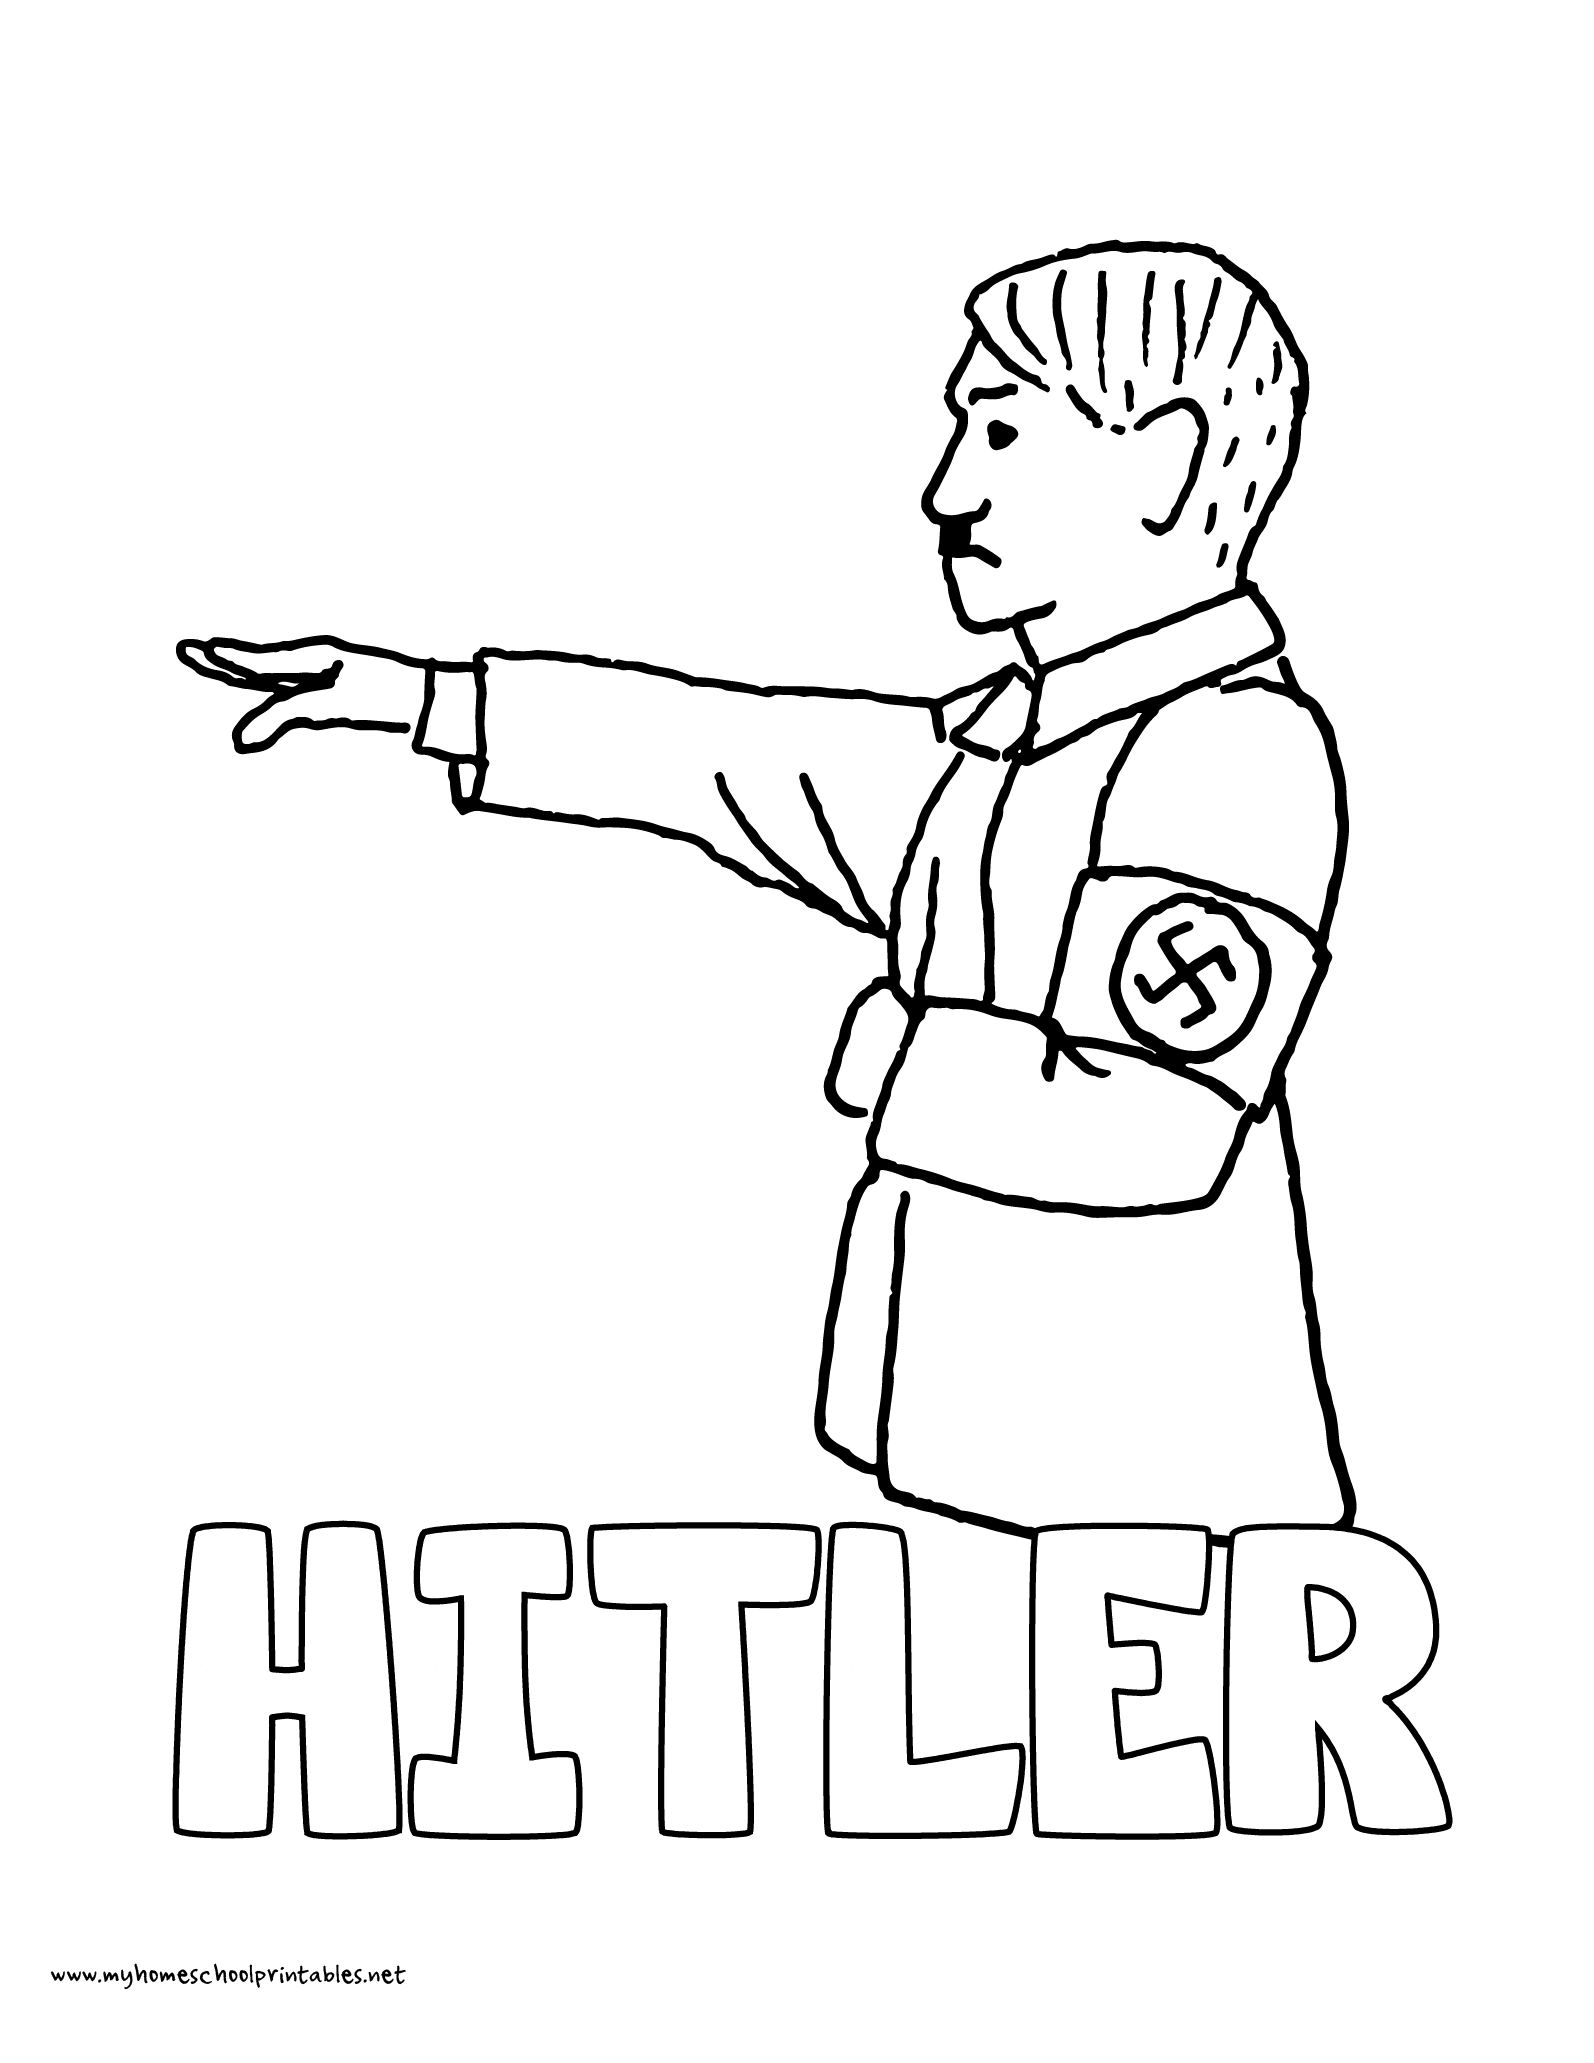 Hitler WWII World War 2 coloring page